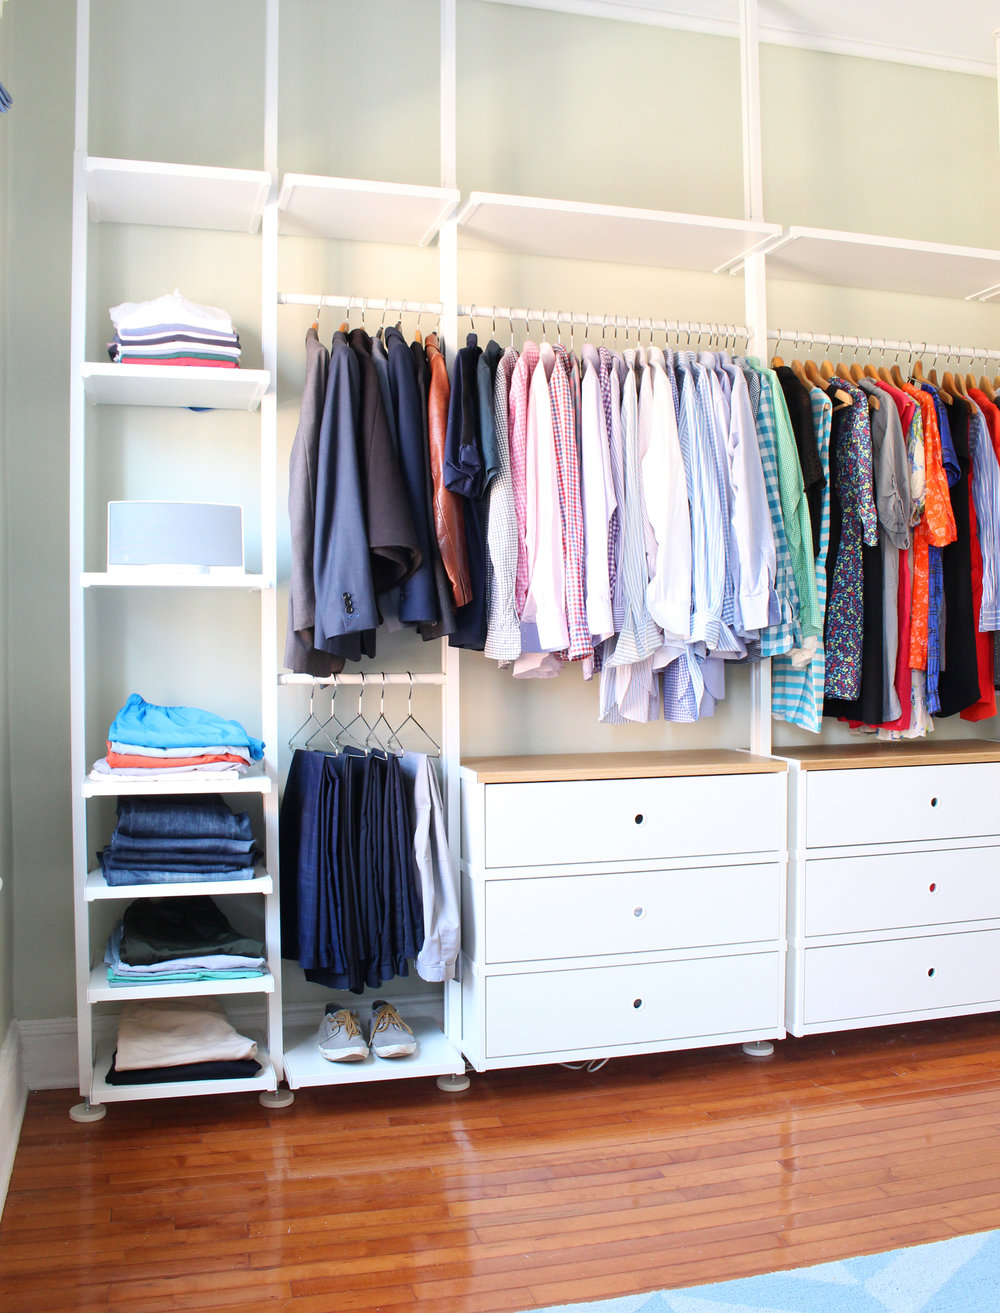 IKEA has several custom closet organization systems including the ELVARLI (featured here), ALGOT, and PAX that are great for making the most of any size closet. Want more design ideas for small spaces? Head to the Mix & Match blog!